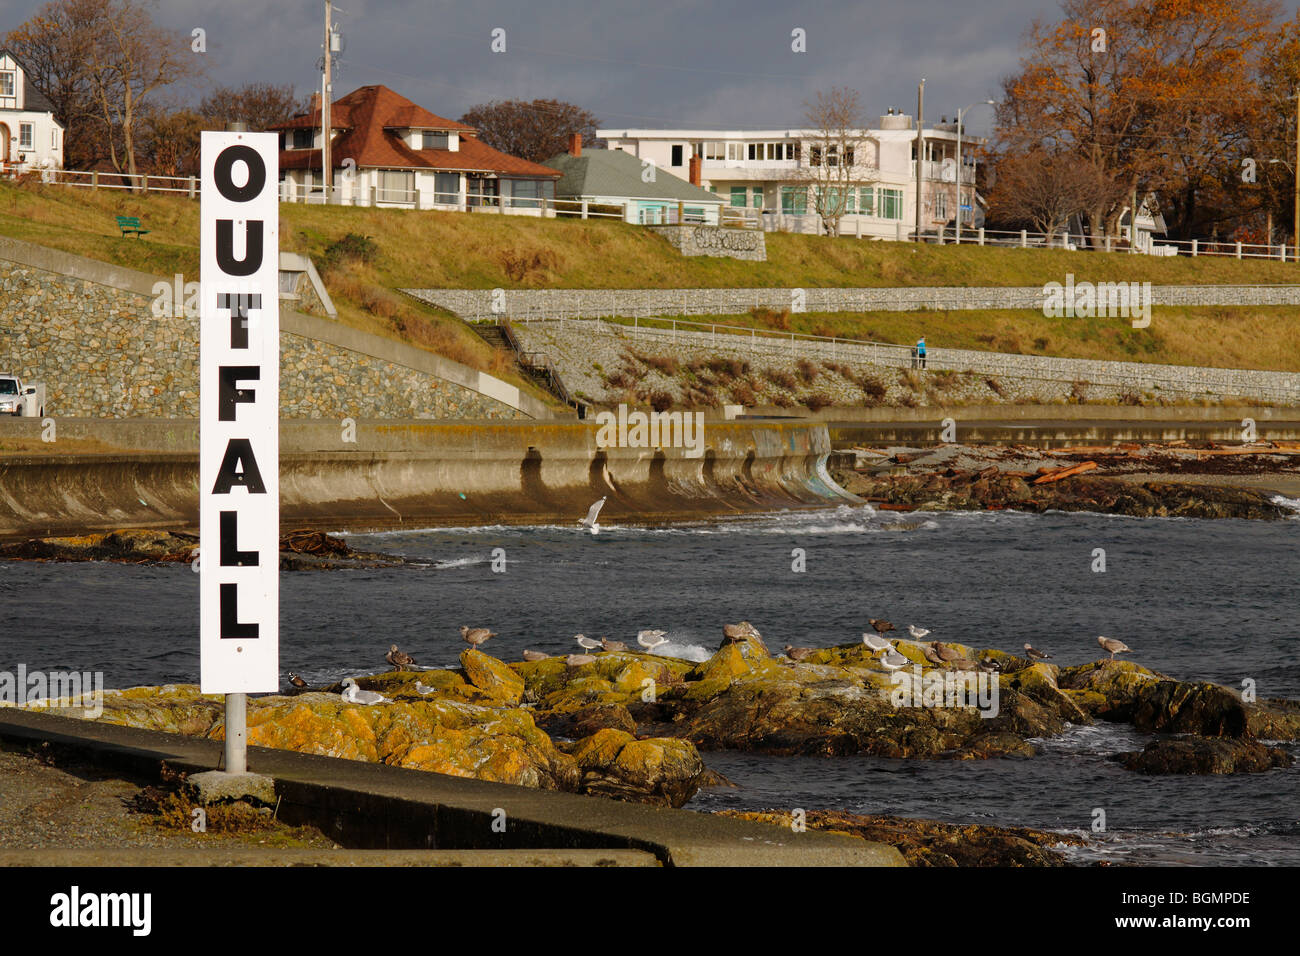 Sewage outfall sign at edge of Clover Point in Juan de Fuca Strait-Victoria, British Columbia, Canada. - Stock Image